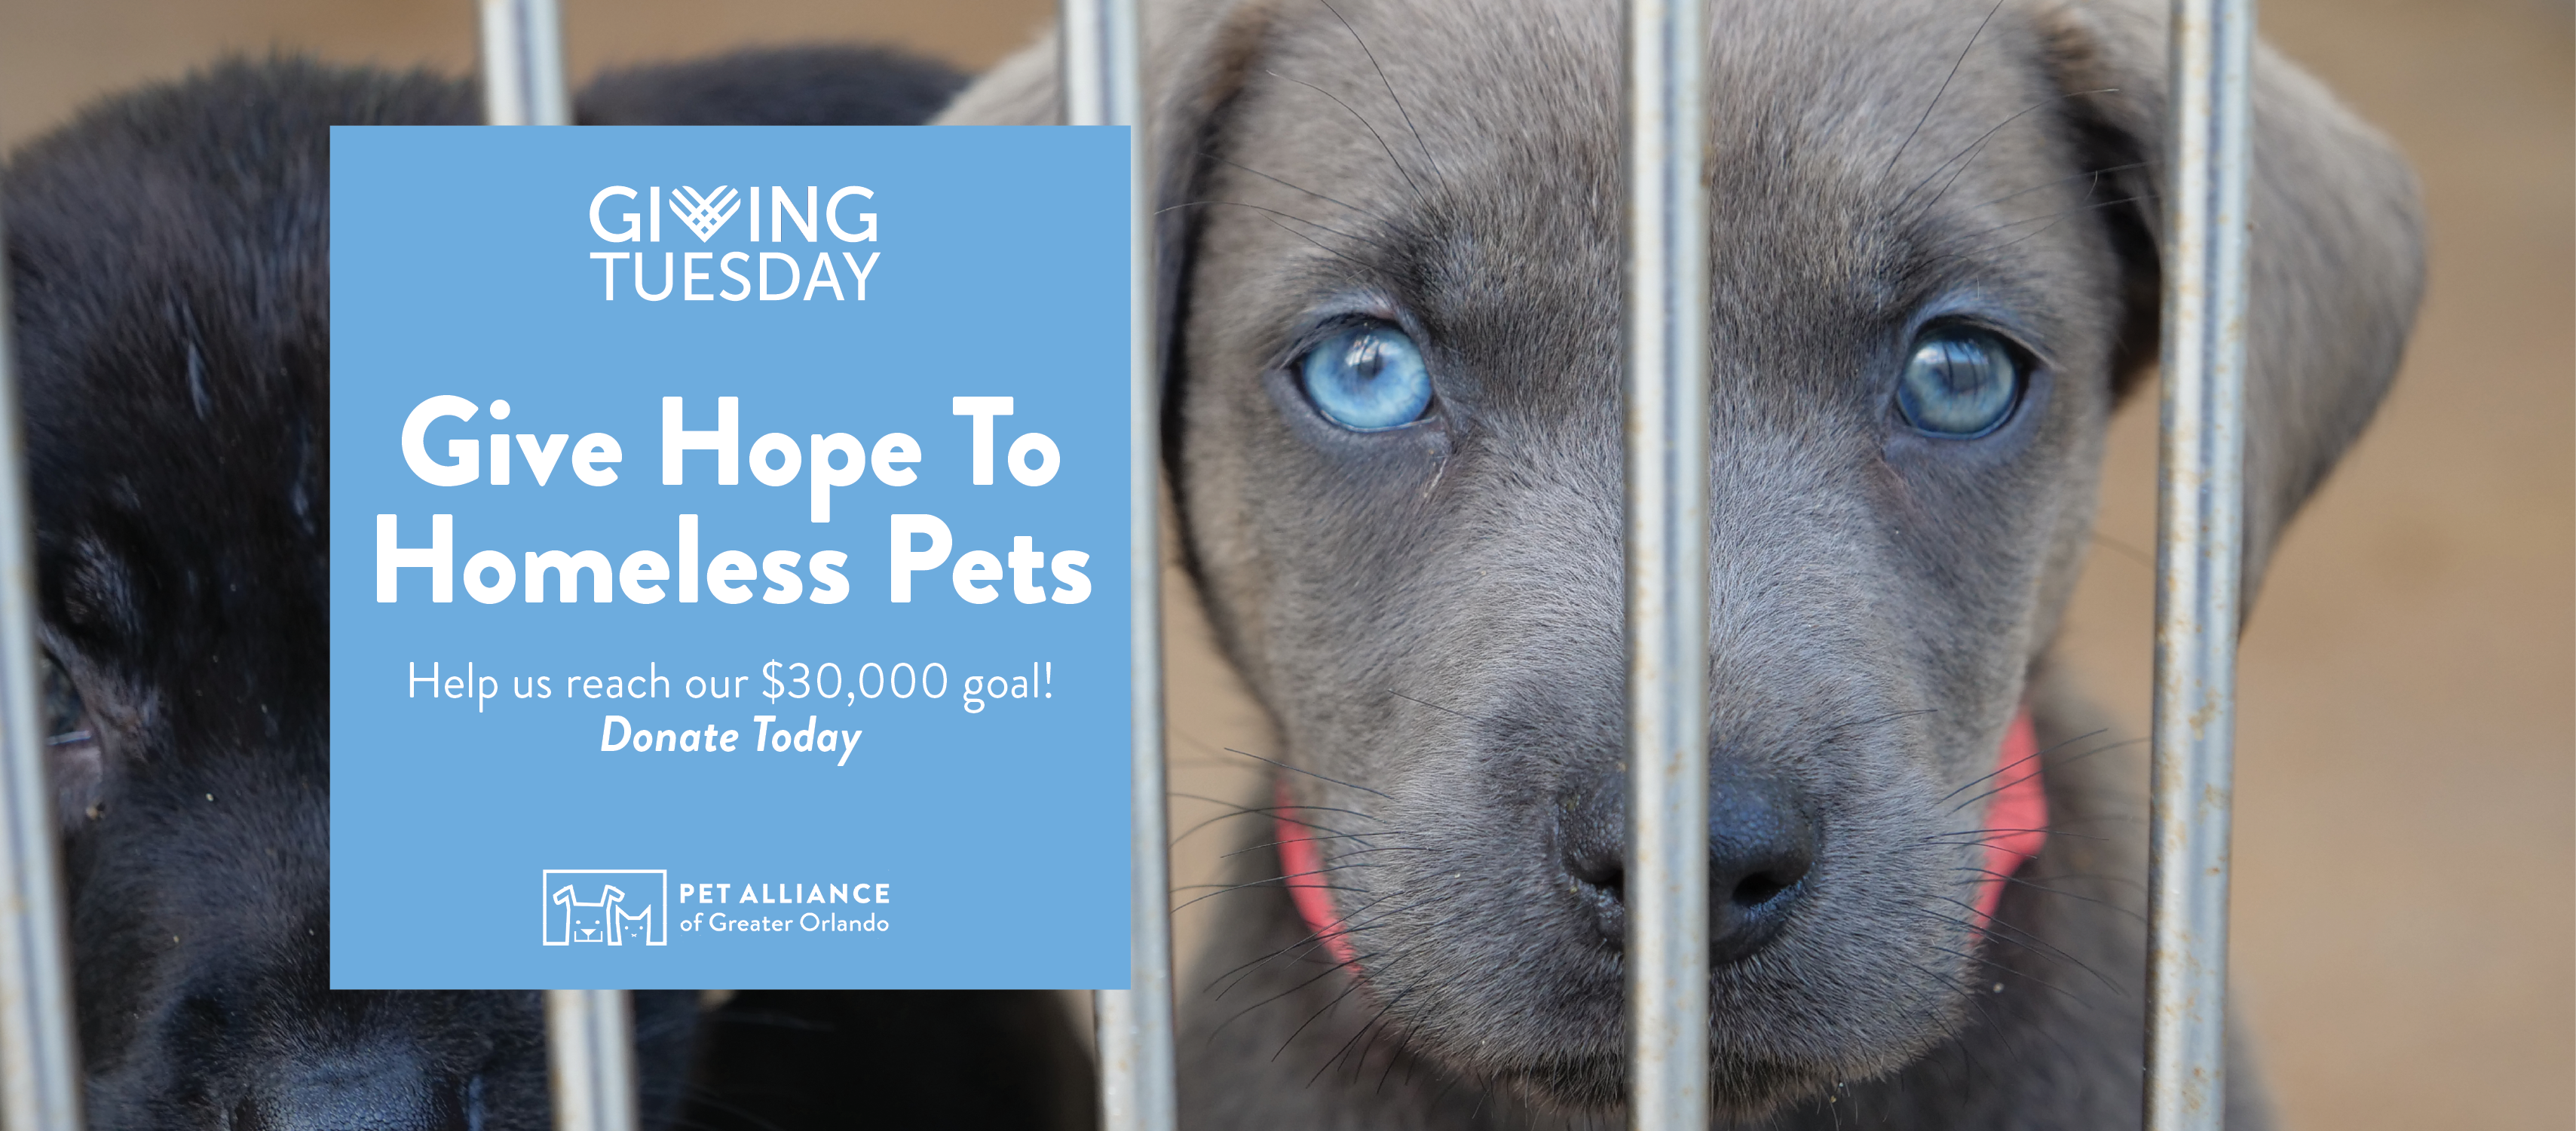 Pet Alliance Giving Tuesday